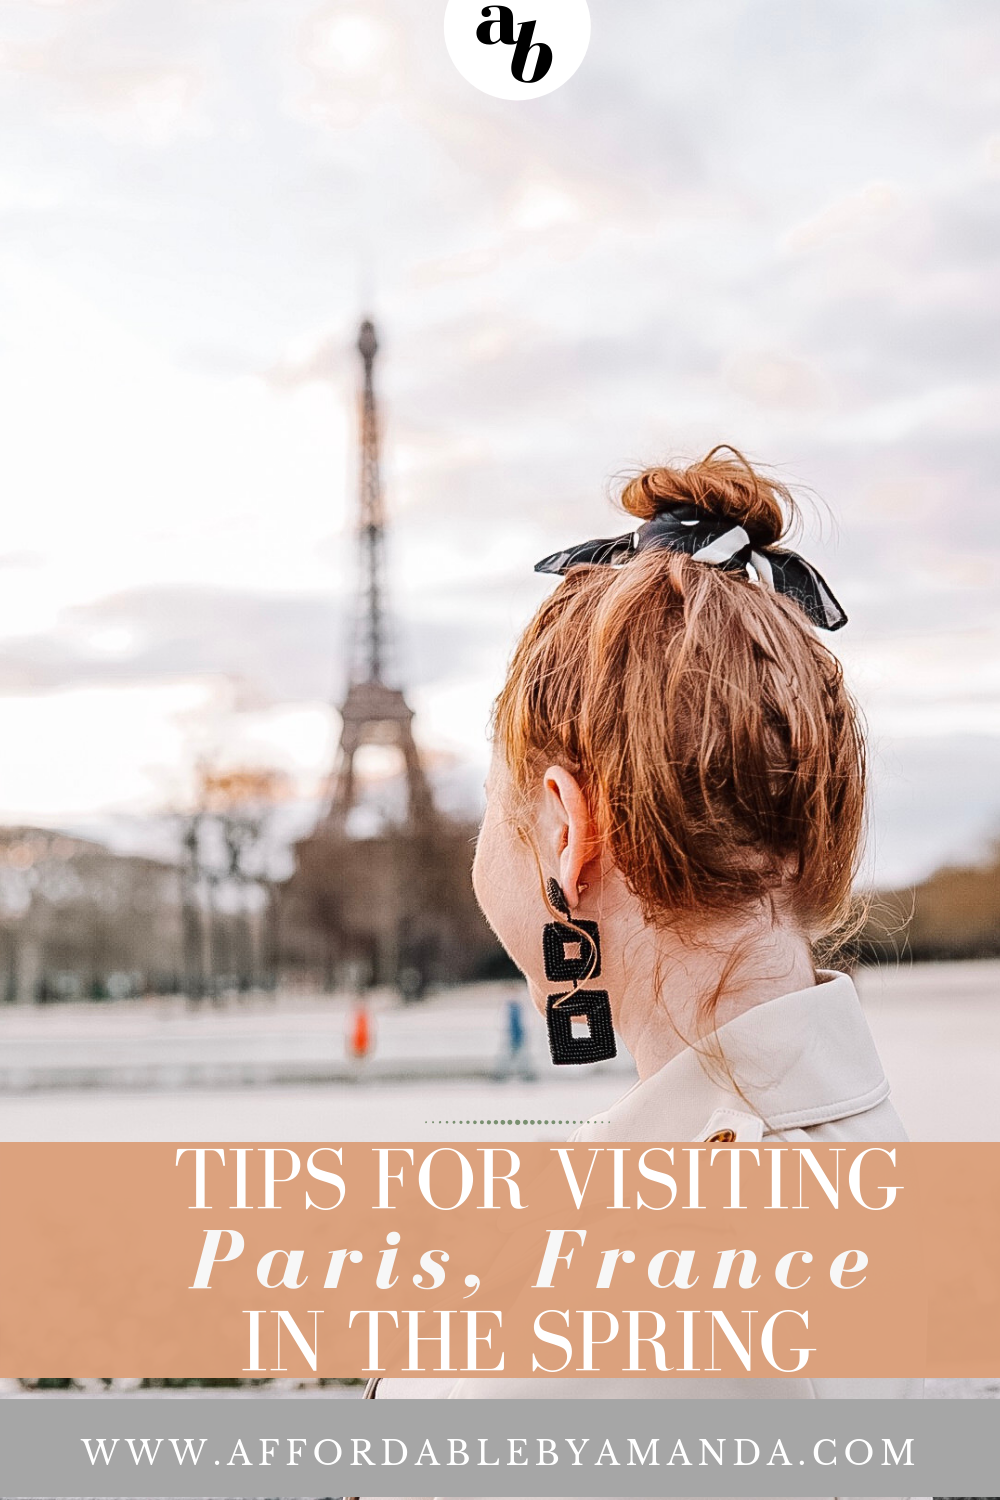 tampa blogger amanda burrows of affordable by amanda gives her tips for visiting paris, france in the spring. she is standing in the city looking over at the Eiffel Tower. She is wearing henna drop earrings in black from BaubleBar.